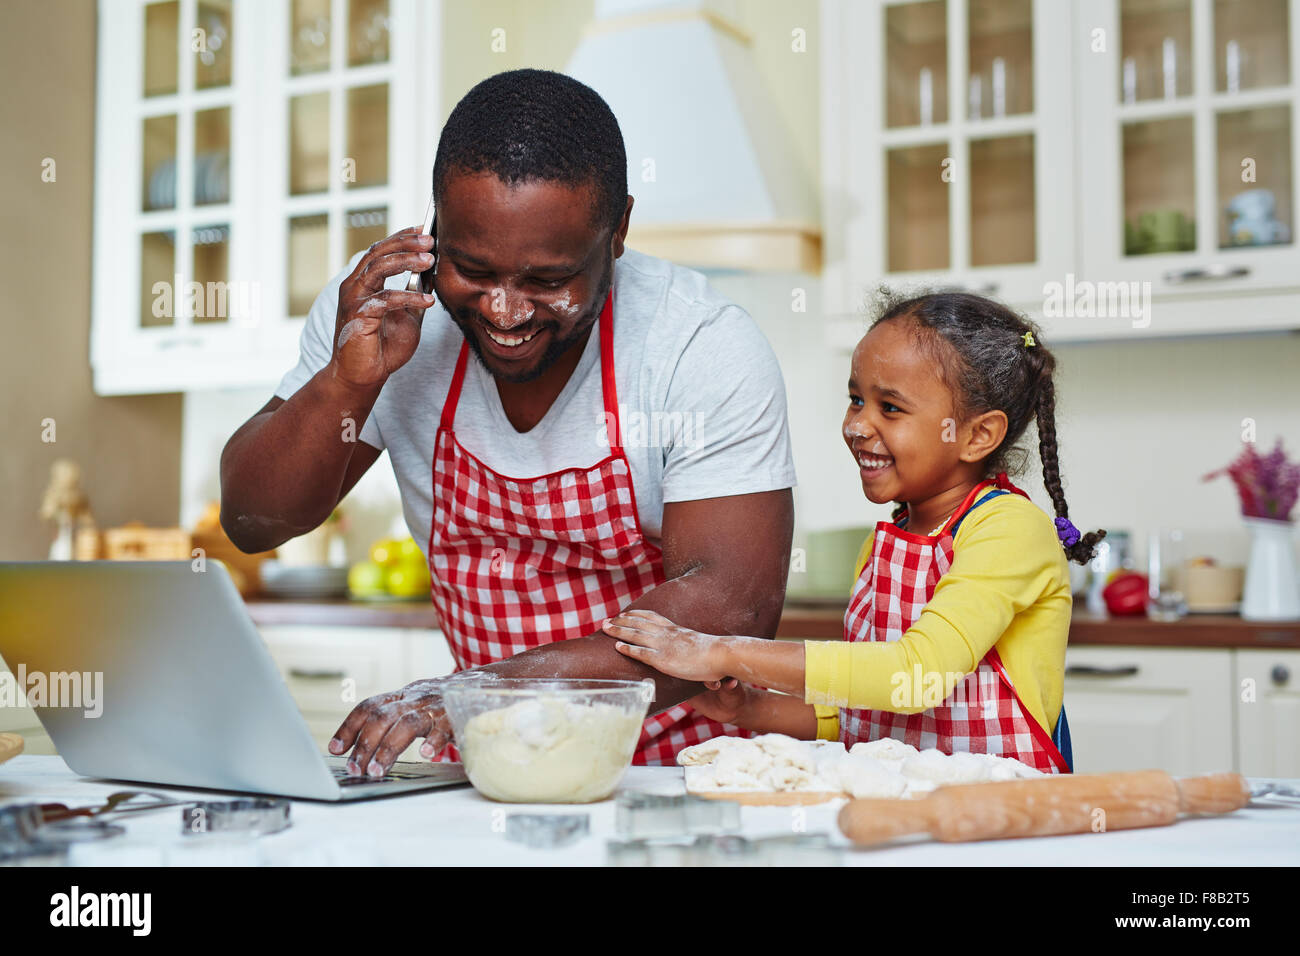 Young man calling and networking in the kitchen with his daughter near by - Stock Image